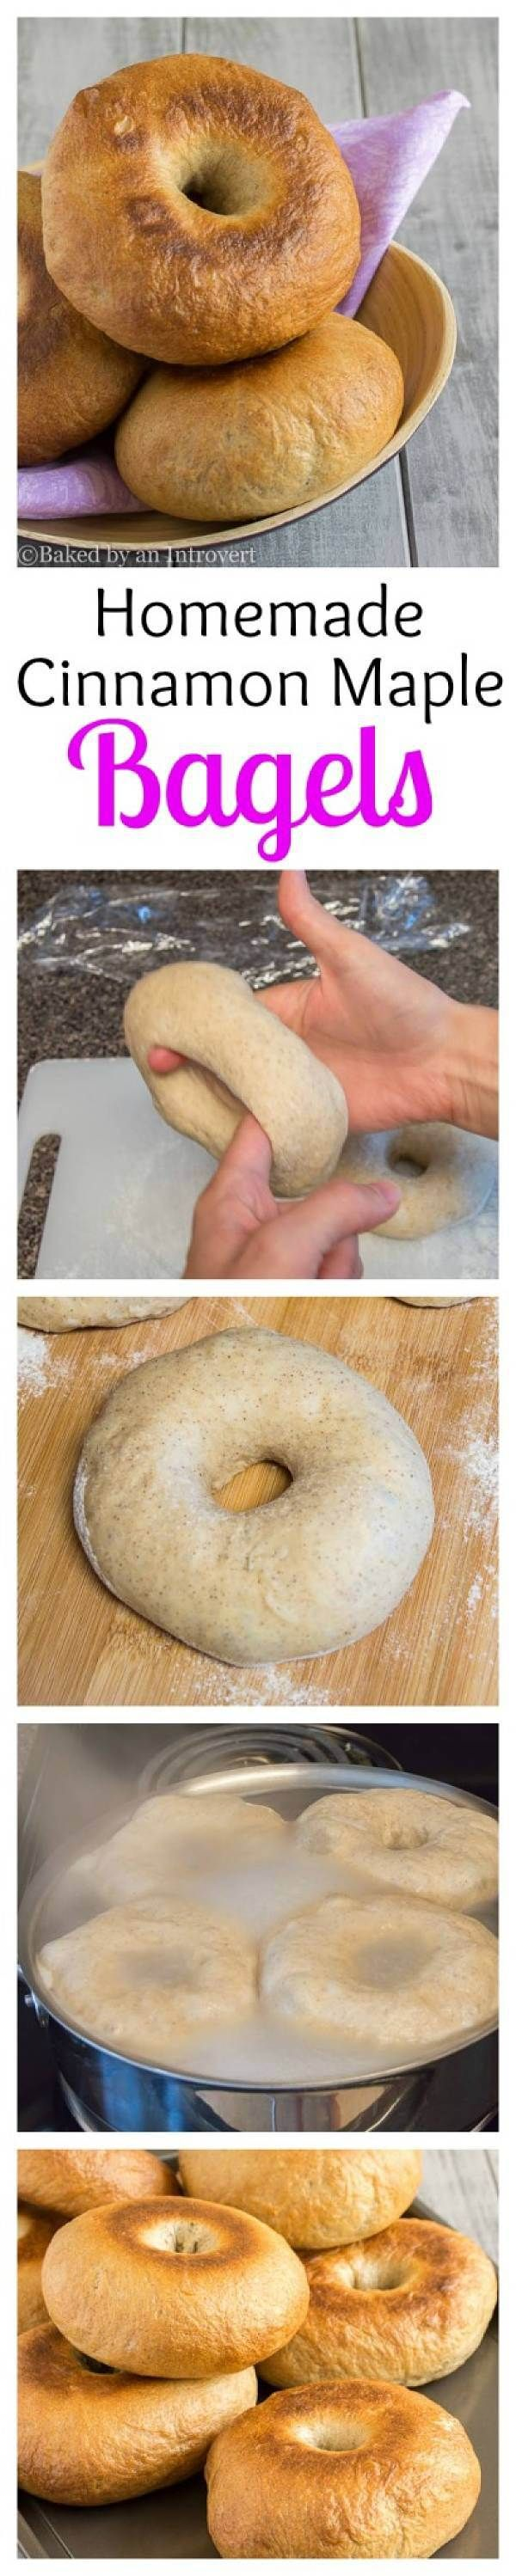 Homemade Cinnamon Maple Bagels | @introvertbaker | bakedbyanintrovert.com